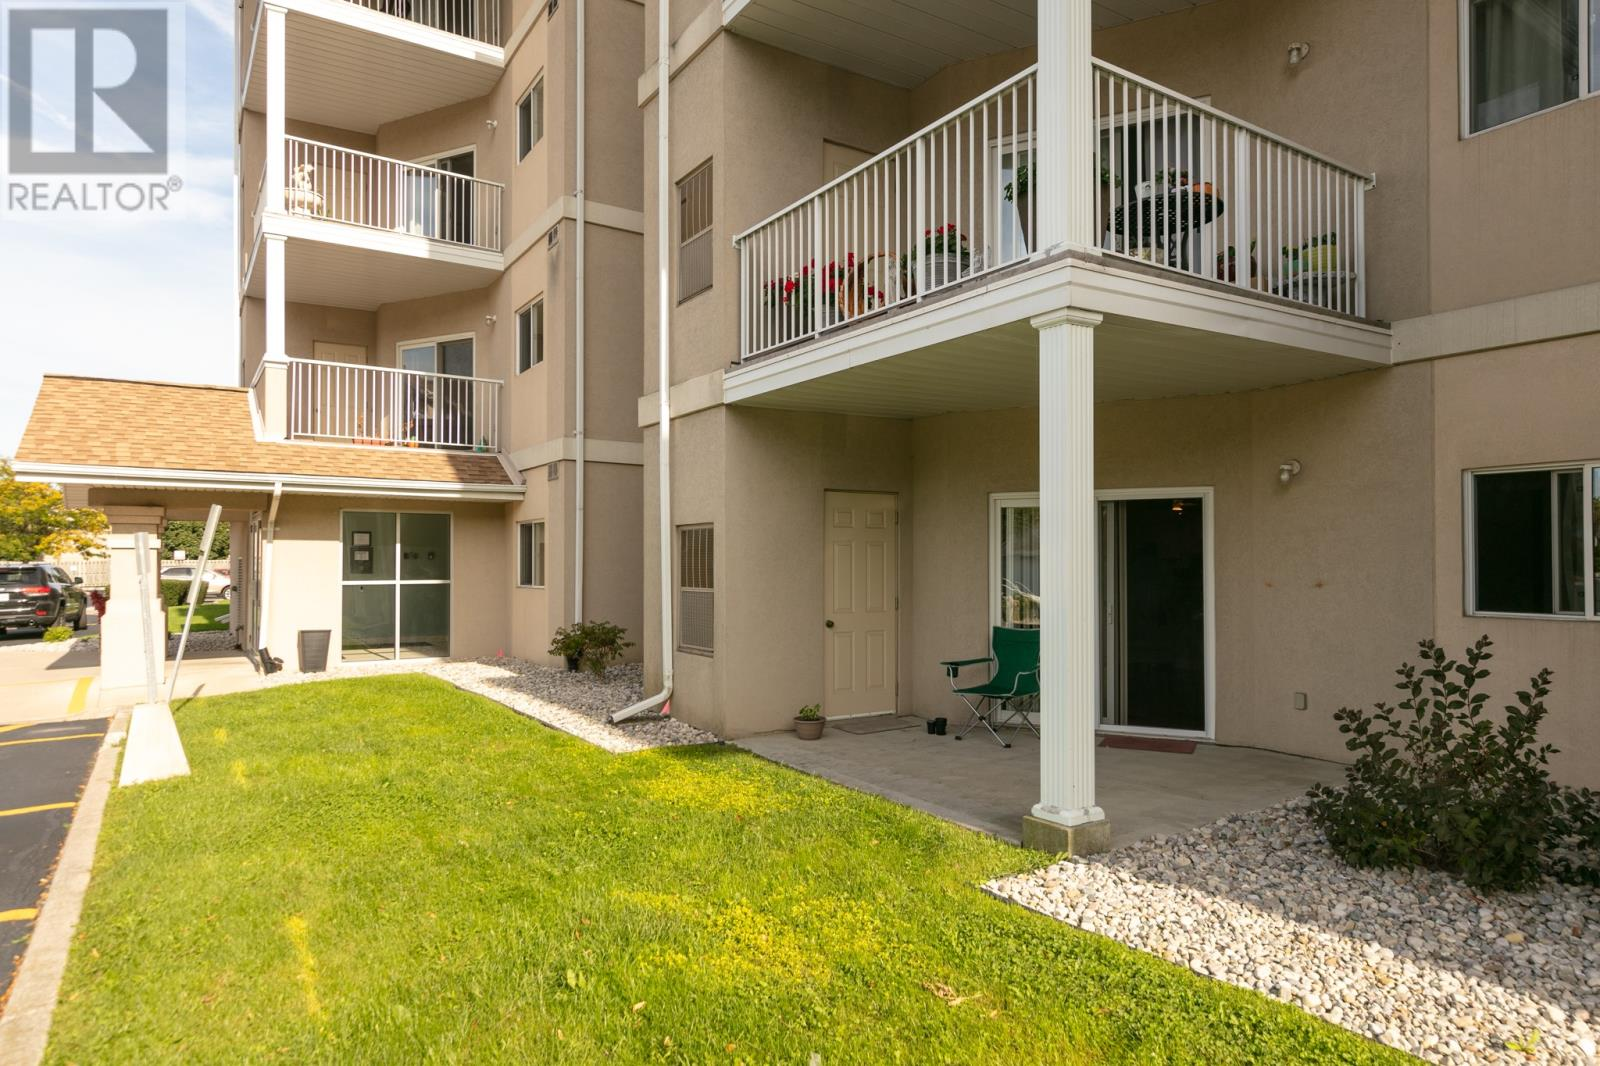 NEWLY REMODELLED MAIN FLOOR CONDO UNIT IN SOUTH WINDSOR